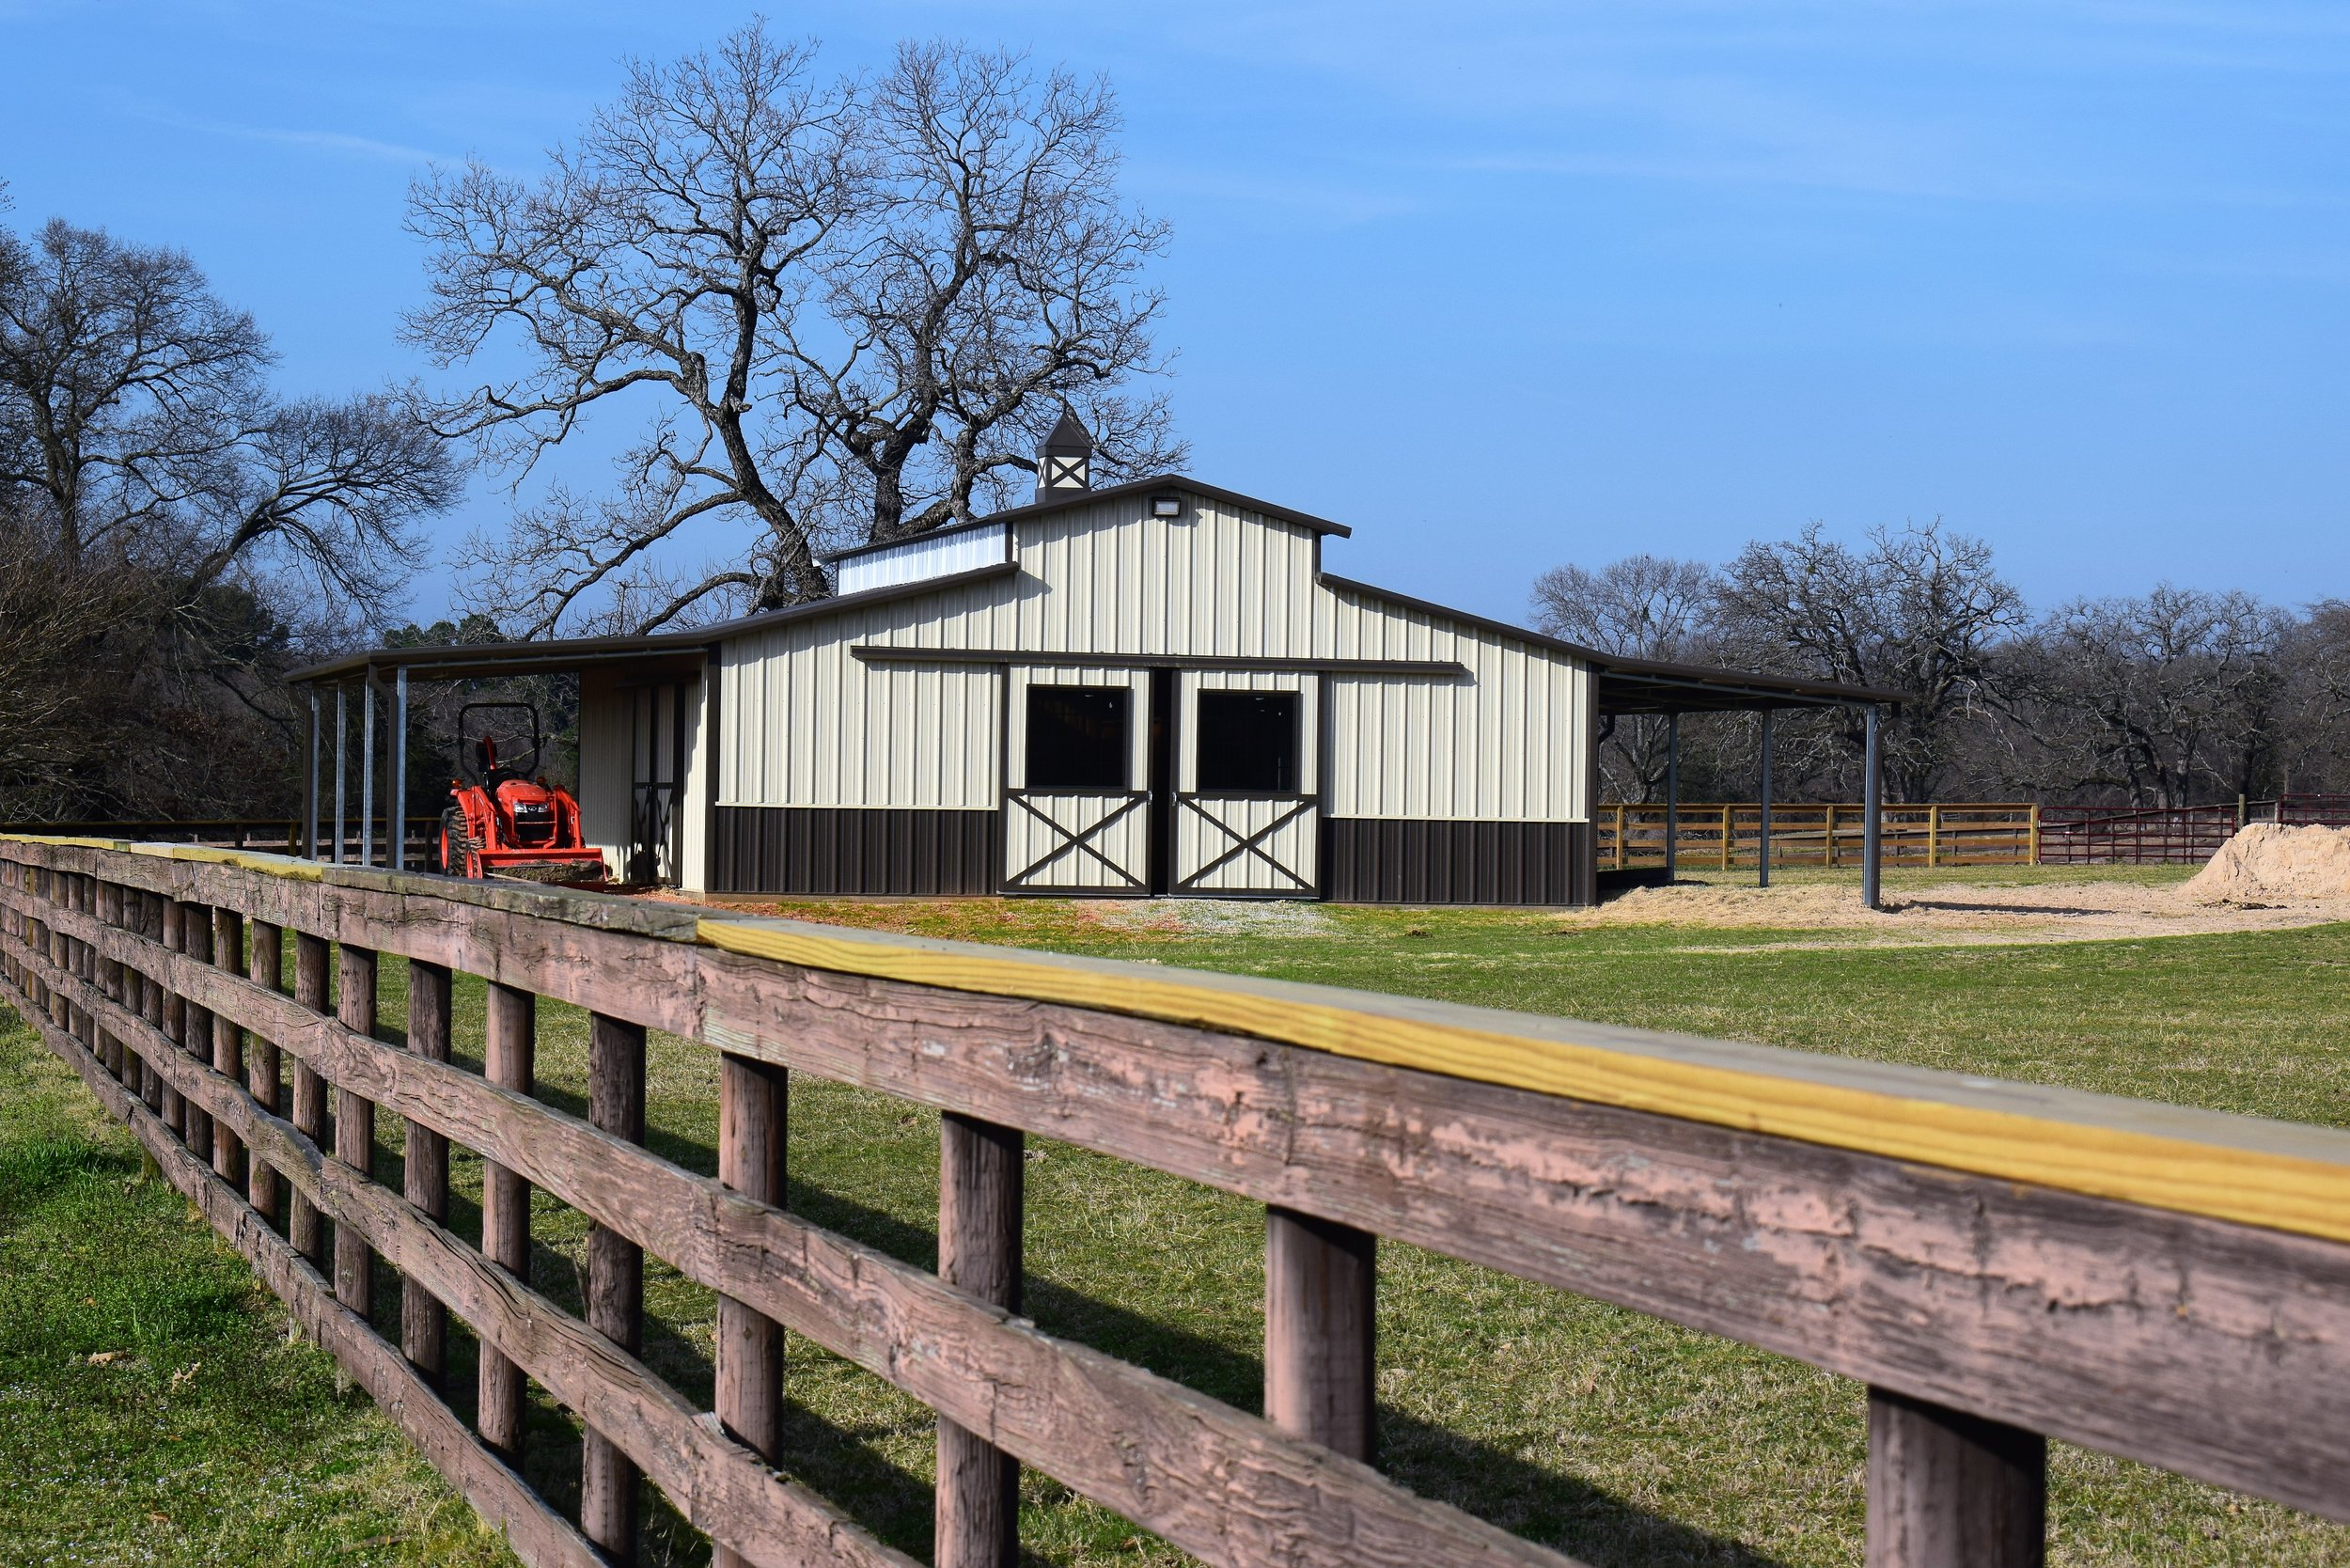 Ameristall Horse Barns - Raised Center Aisle to Event Arenas